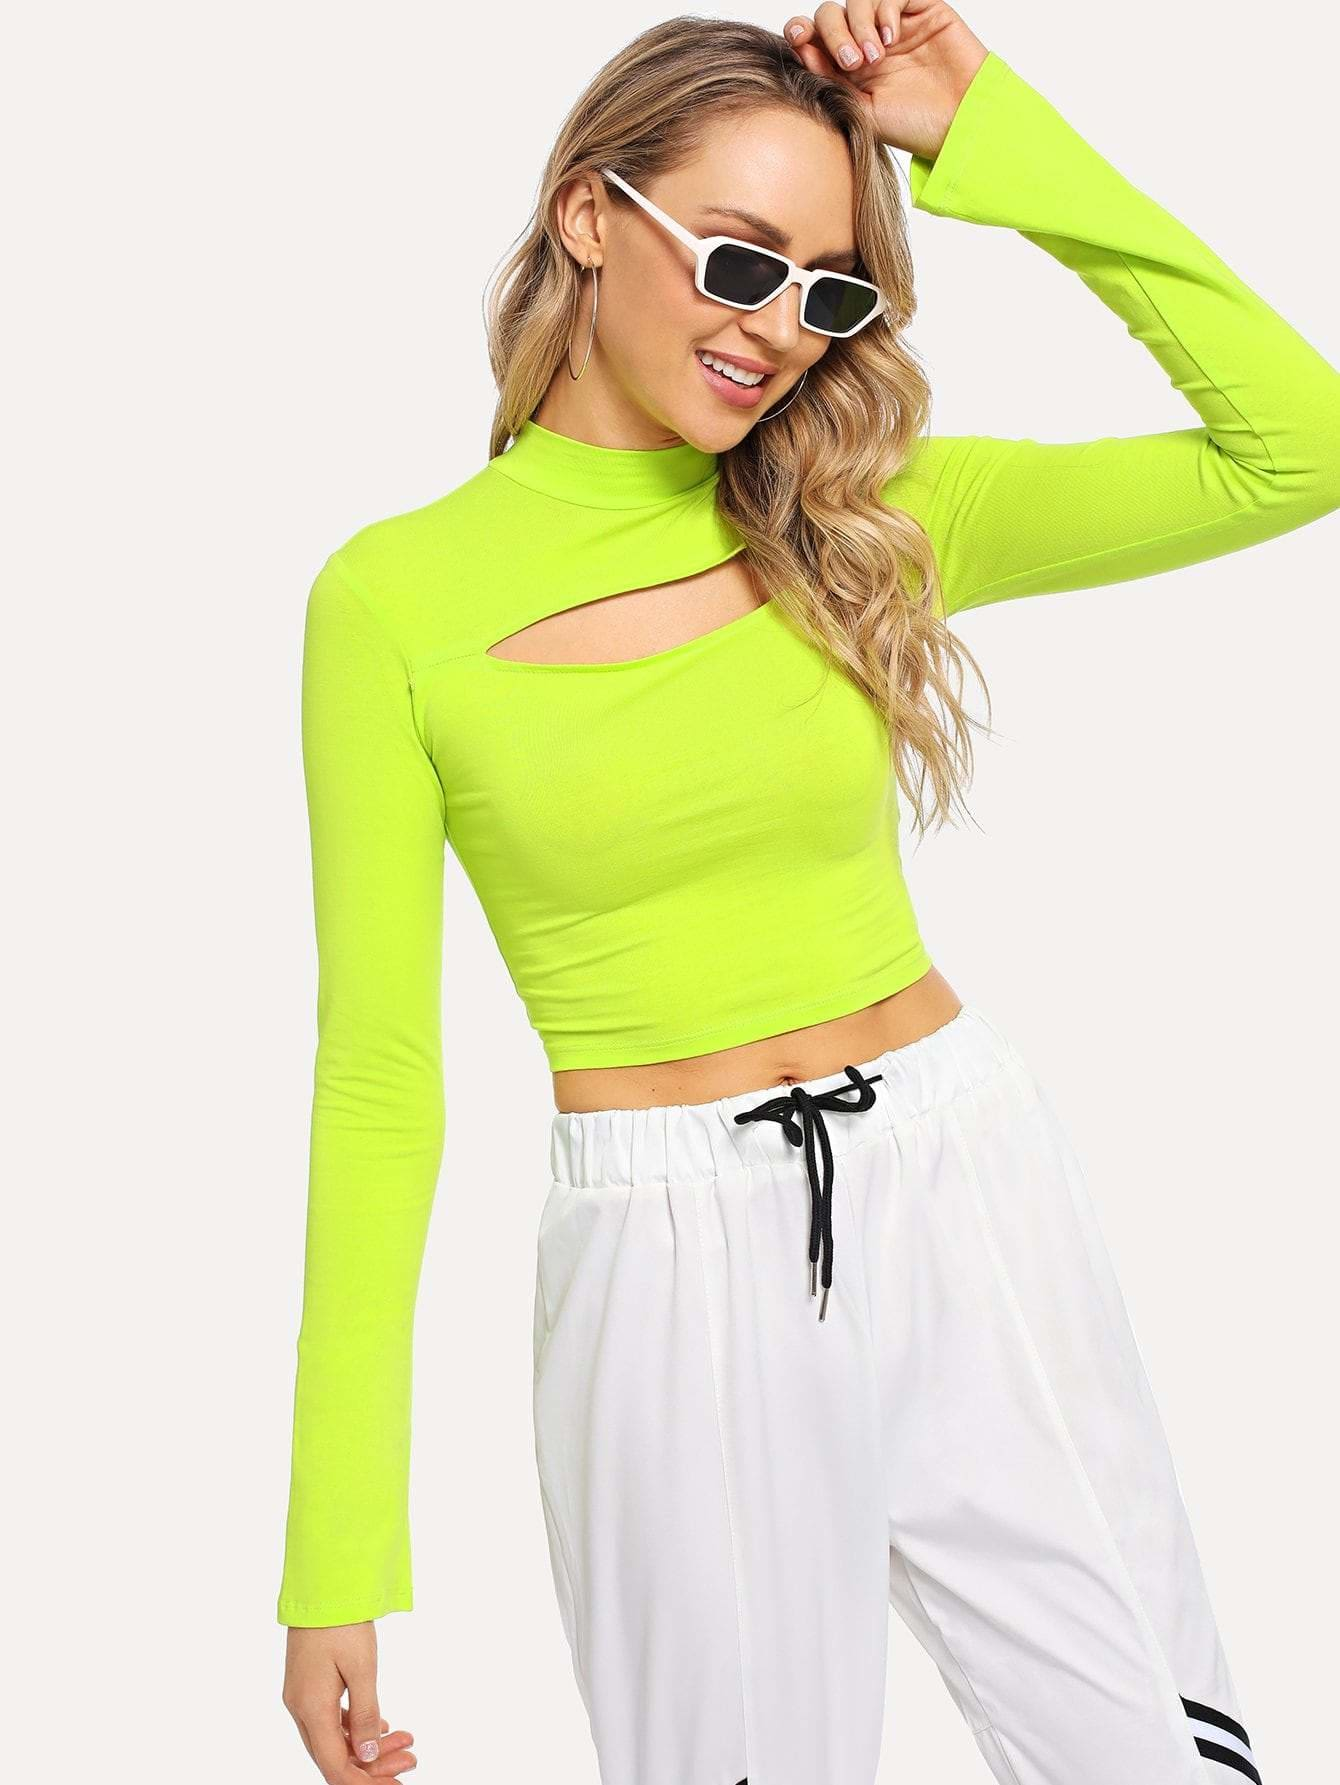 Neon Lime Cut Out Crop Tee - Gym Tops